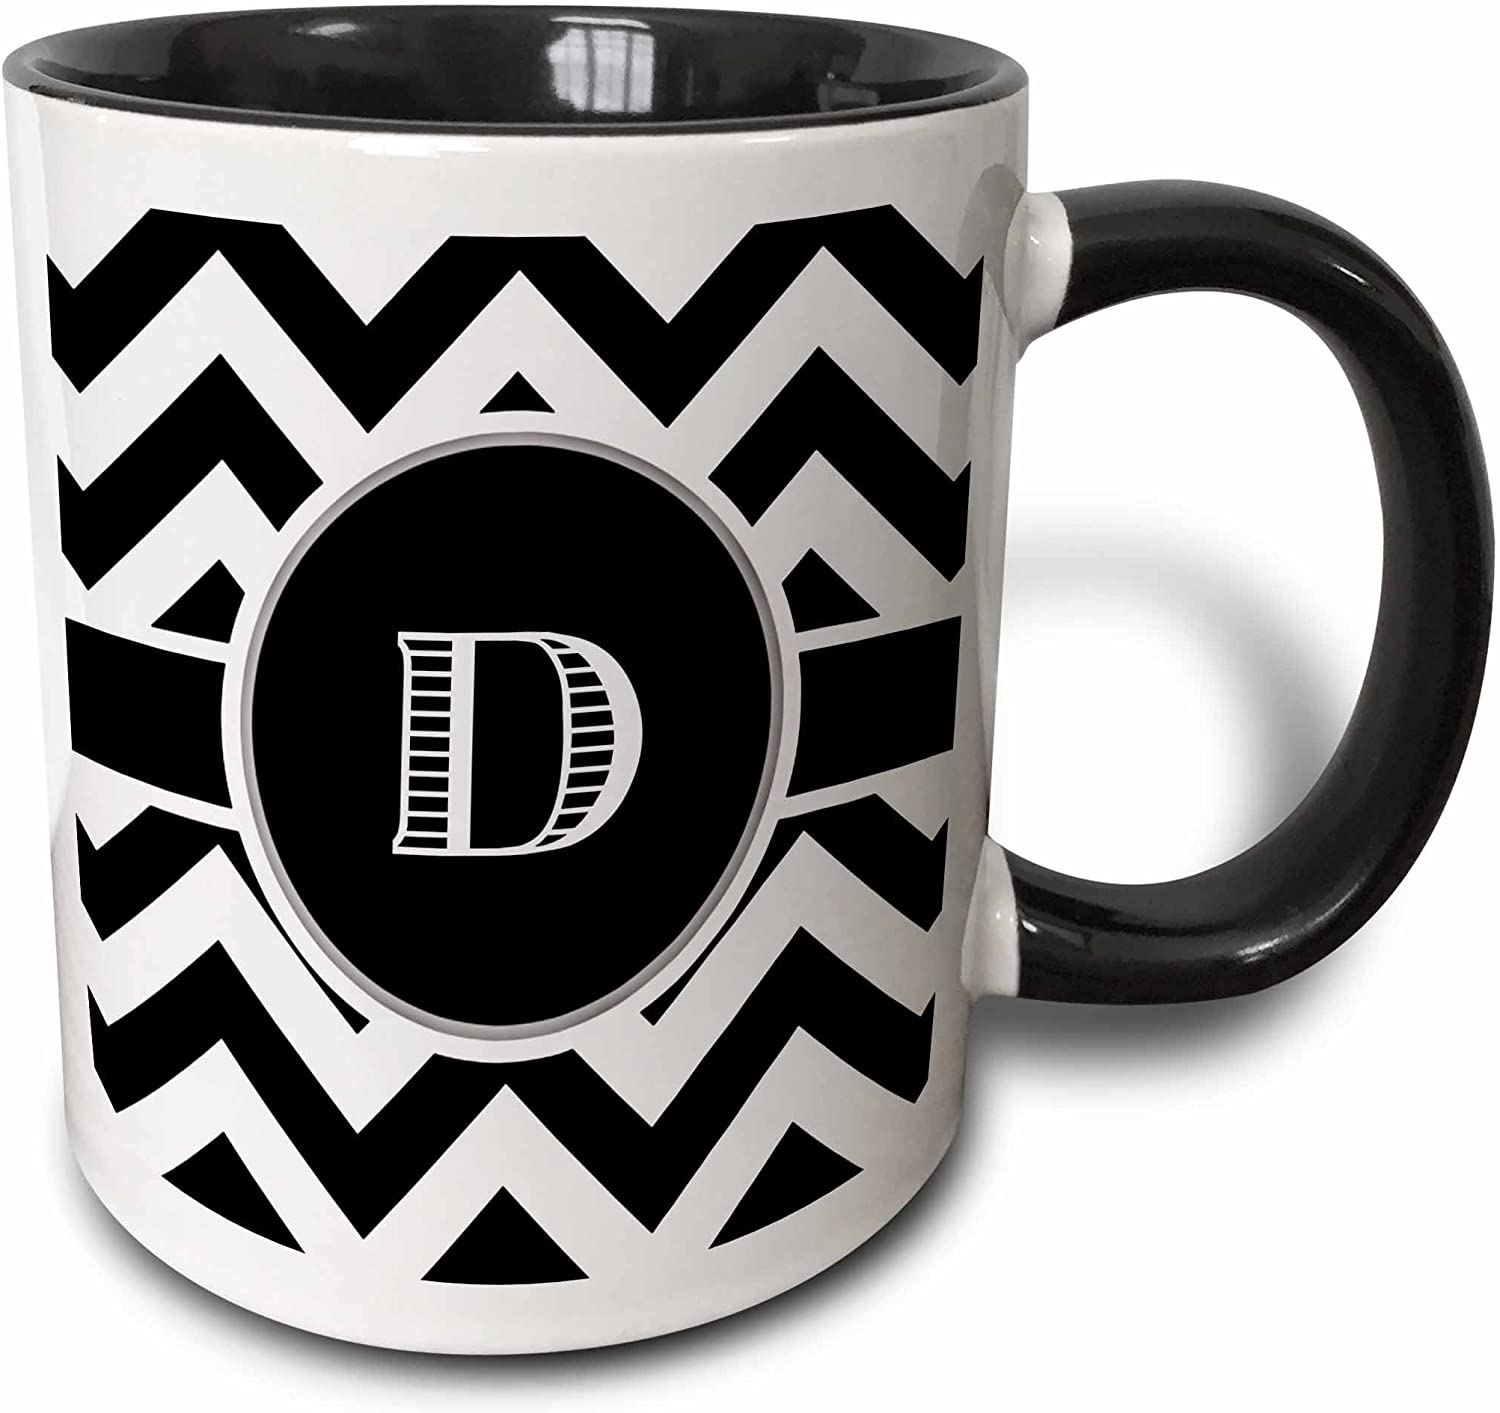 3dRose Black And White Chevron Monogram Initial D Ceramic Mug, 11 oz